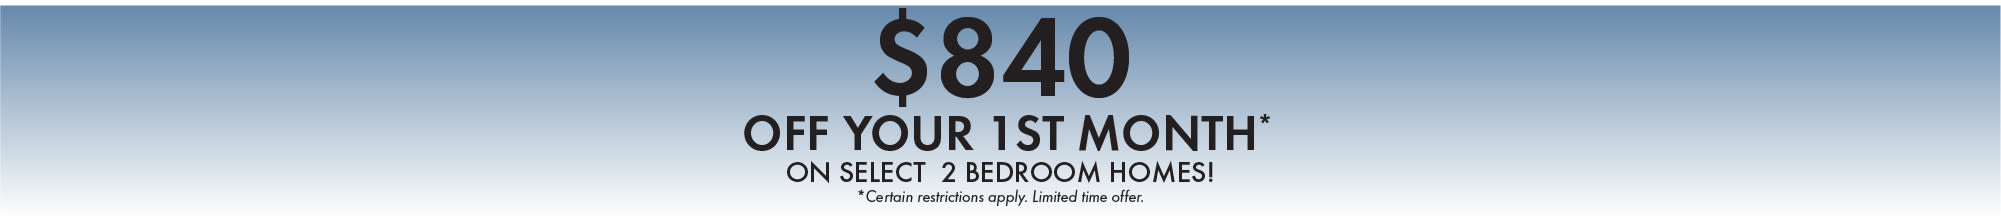 Special offer from The Landings at Beckett Ridge in West Chester, Ohio